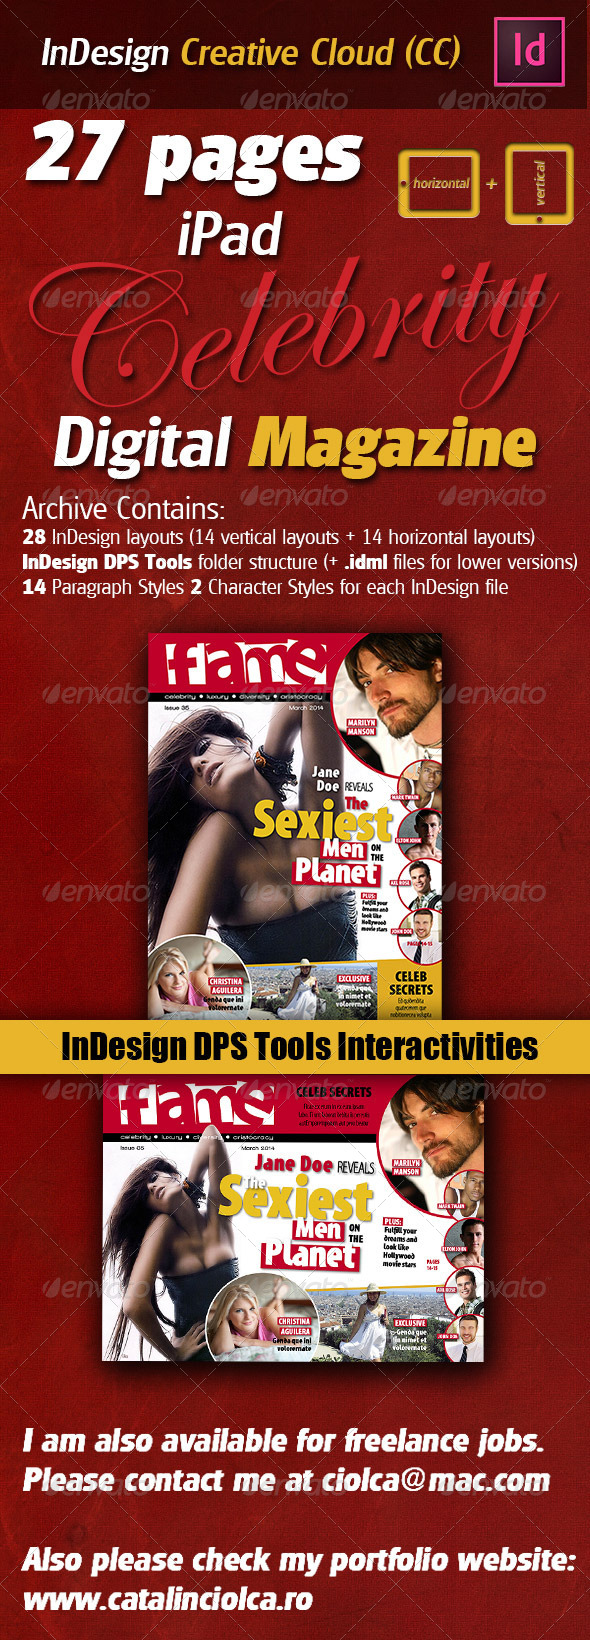 GraphicRiver 27 Pages iPad Celebrity Digital Magazine 5237113